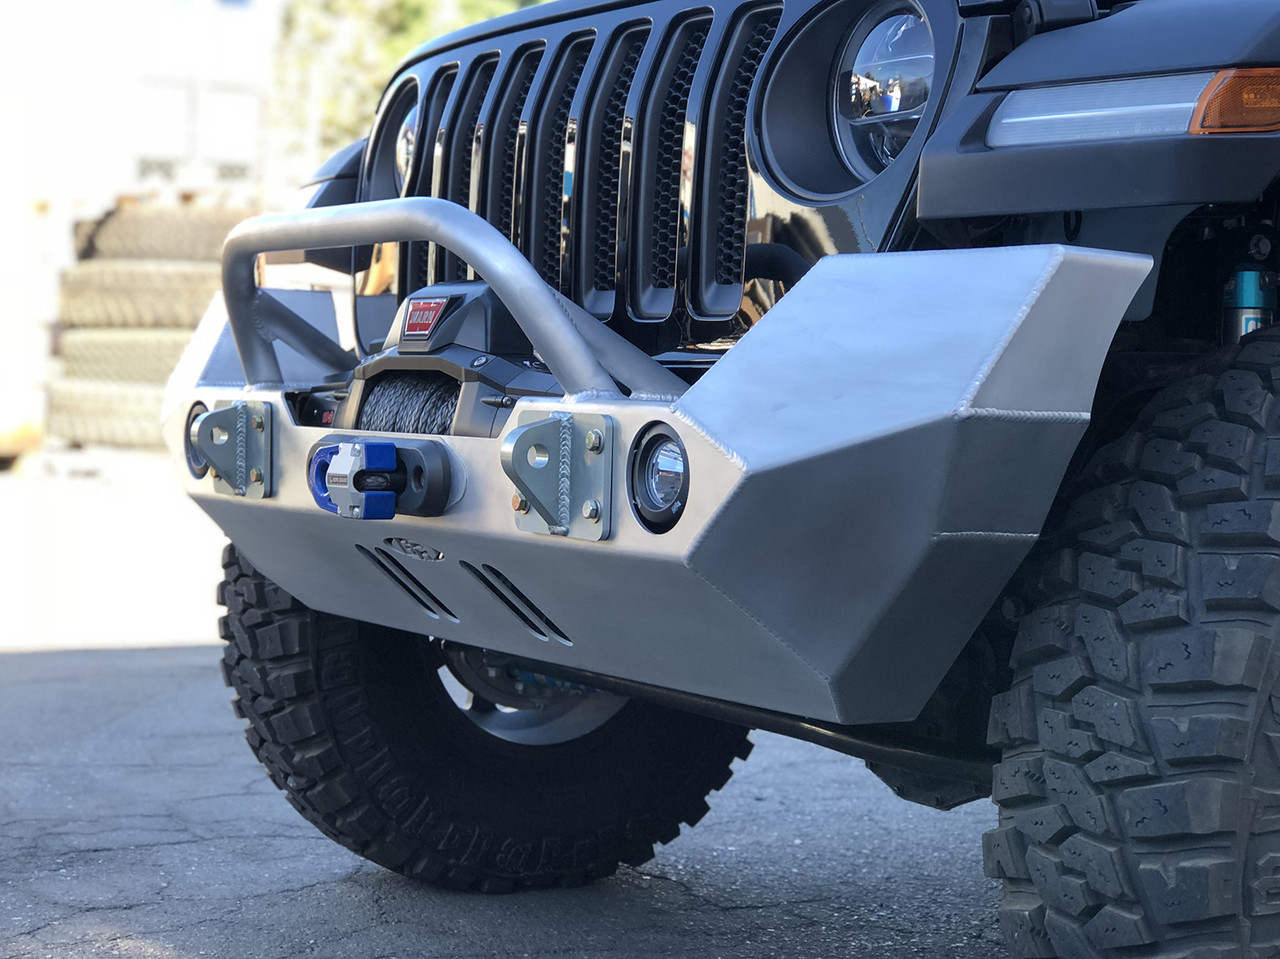 Jeep Wragler JL Full Width Front Bumper w/ Winch Guard Bar - Aluminum